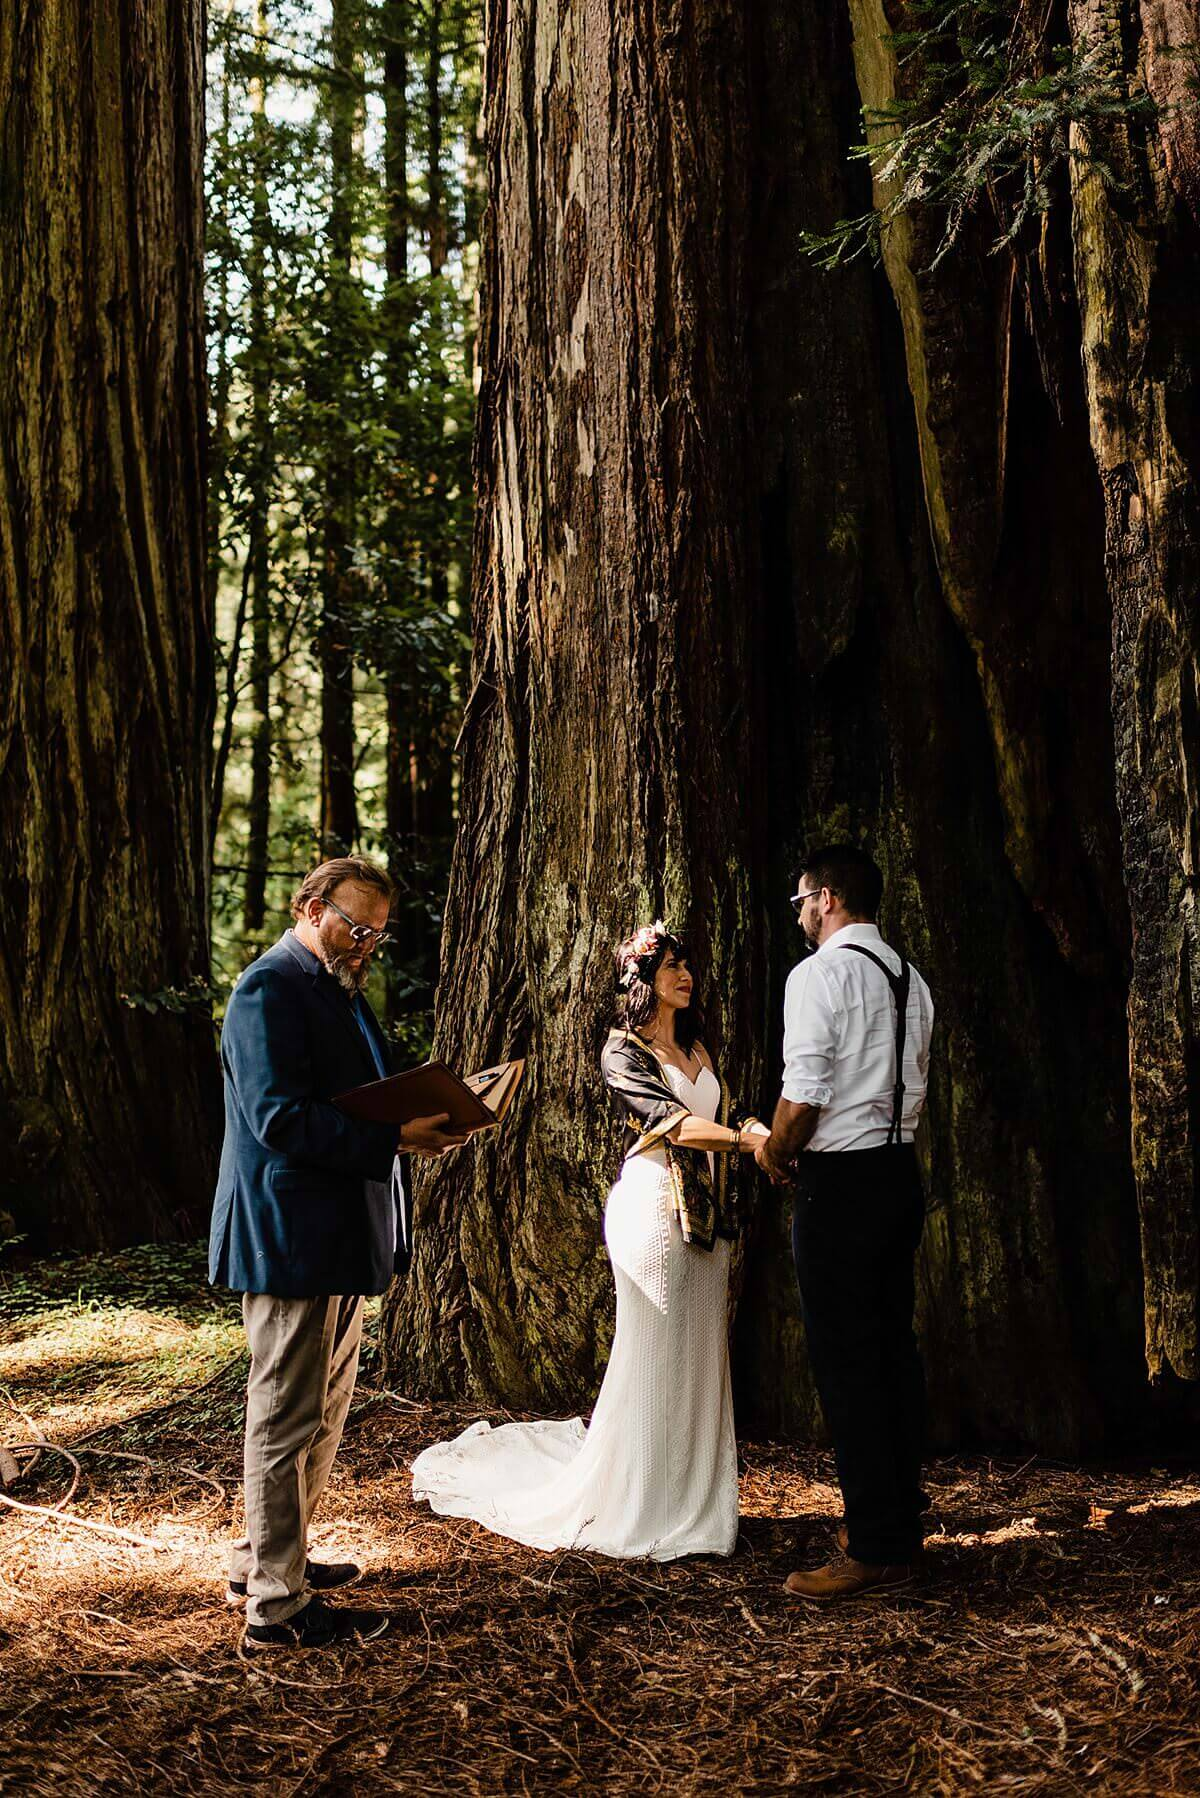 Allison-Brooks-Jedediah-Smiith-Redwoods-Adventure-Elopement-Wedding-S-Photography-Blog_0022.jpg